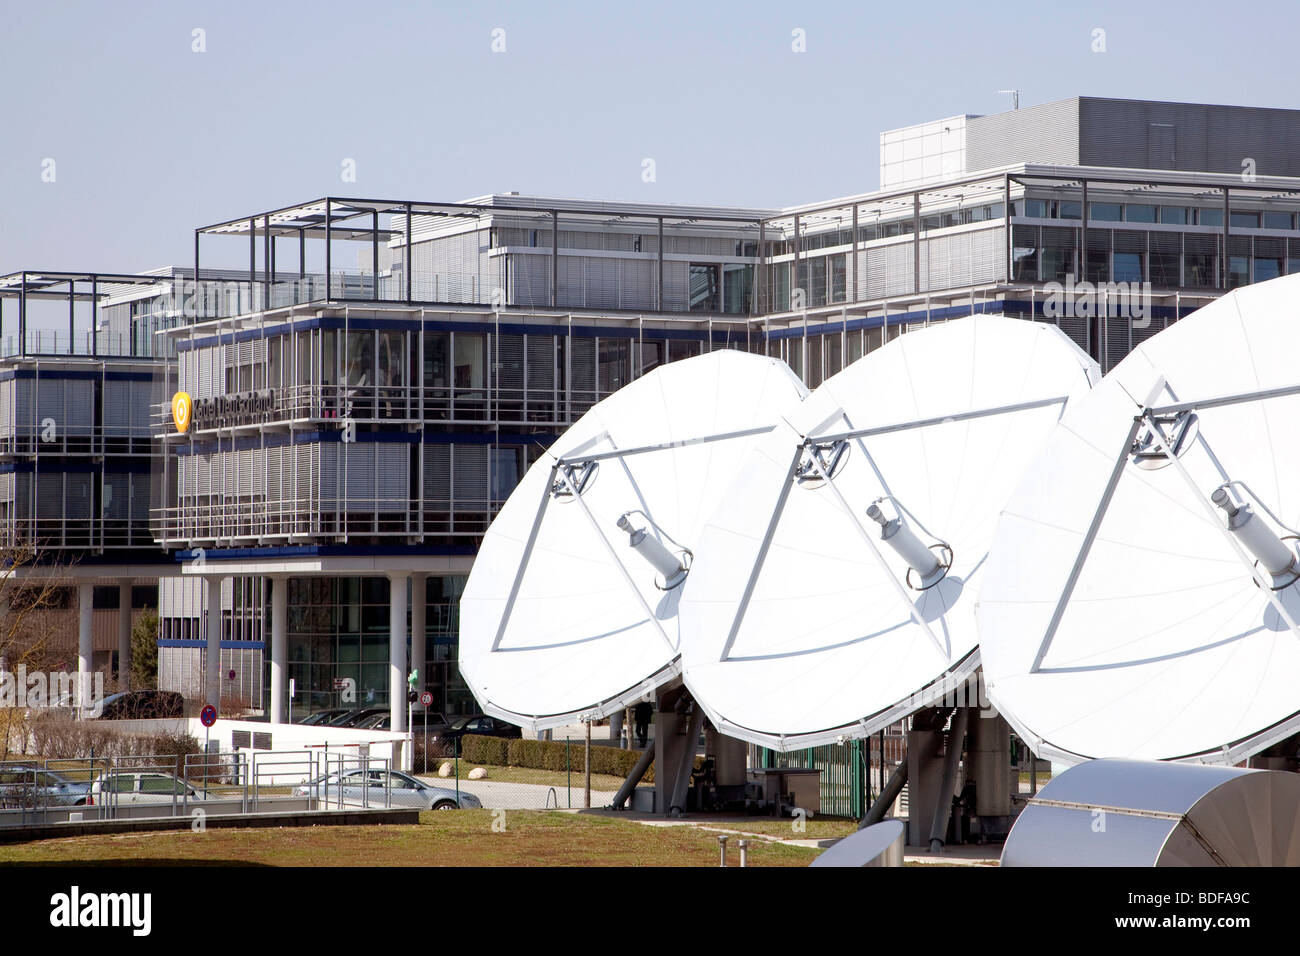 Kabel Deutschland company, satellite dishes in Unterfoehring near Munich, Bavaria, Germany, Europe - Stock Image